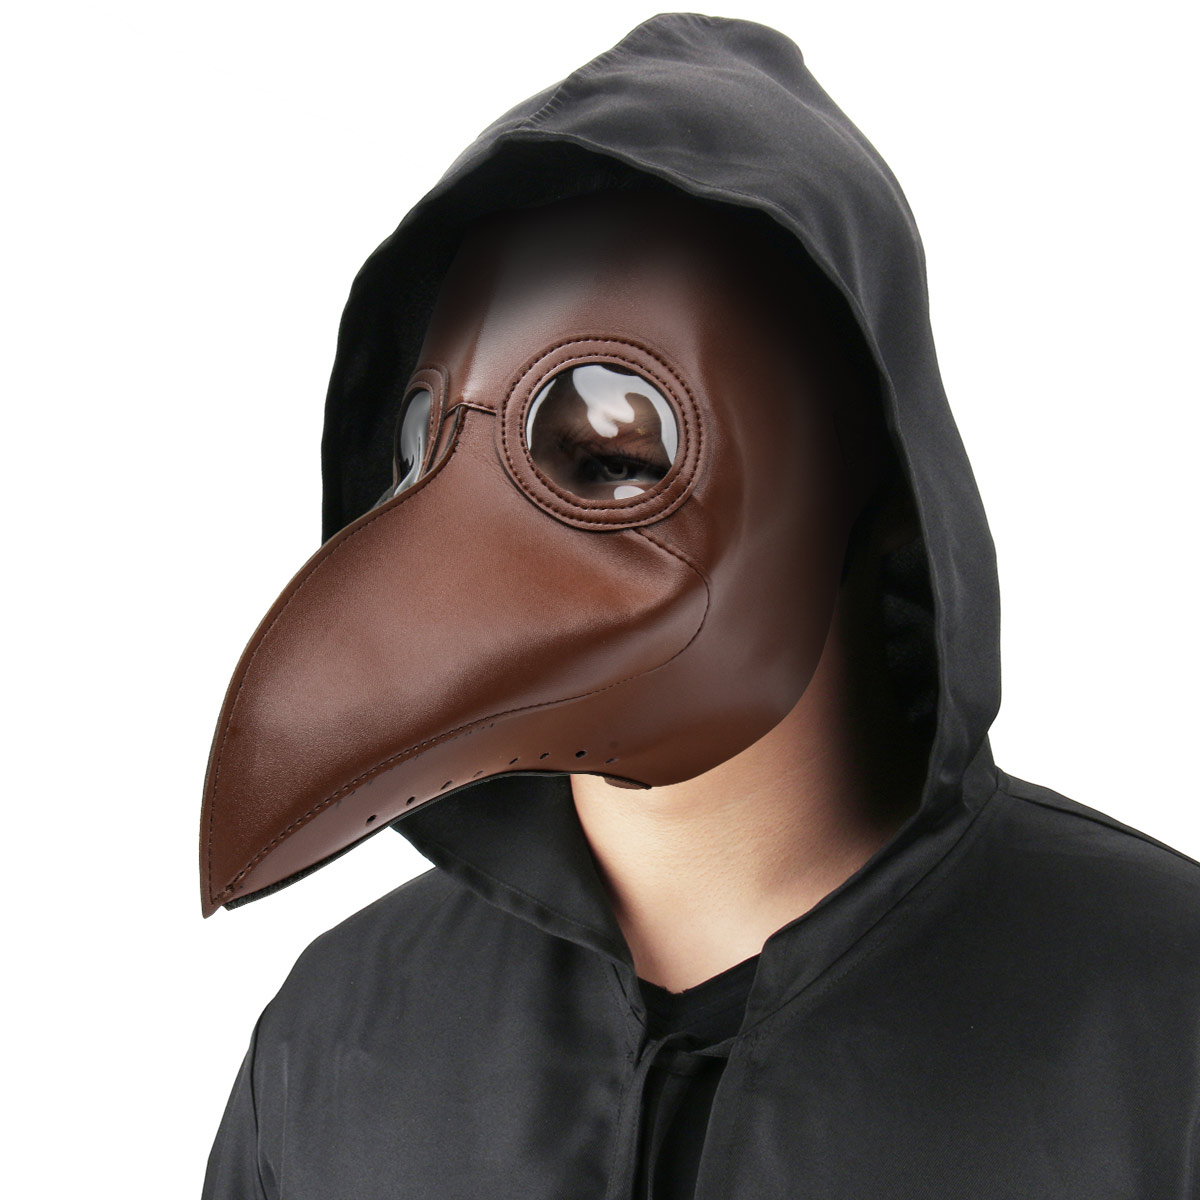 Birds Beak Masks Cospaly Dr. Beulenpest Steampunk Plague Doctor Mask In Stock